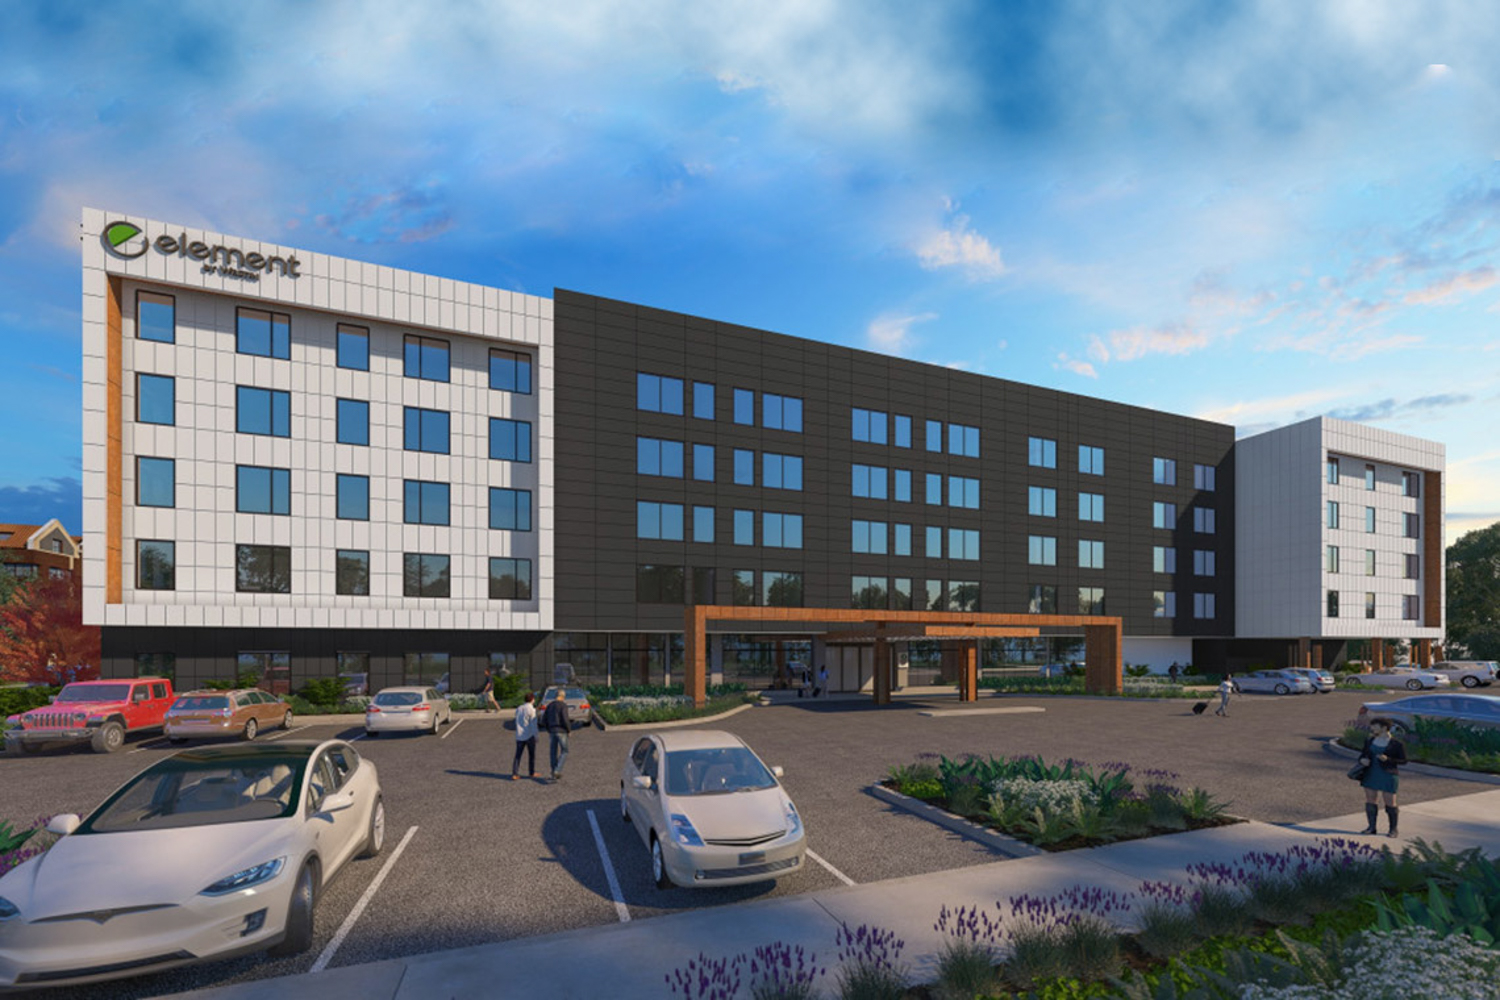 Element Hotel by Marriott, 1130 Champions Drive, rendering via Huff Construction Co